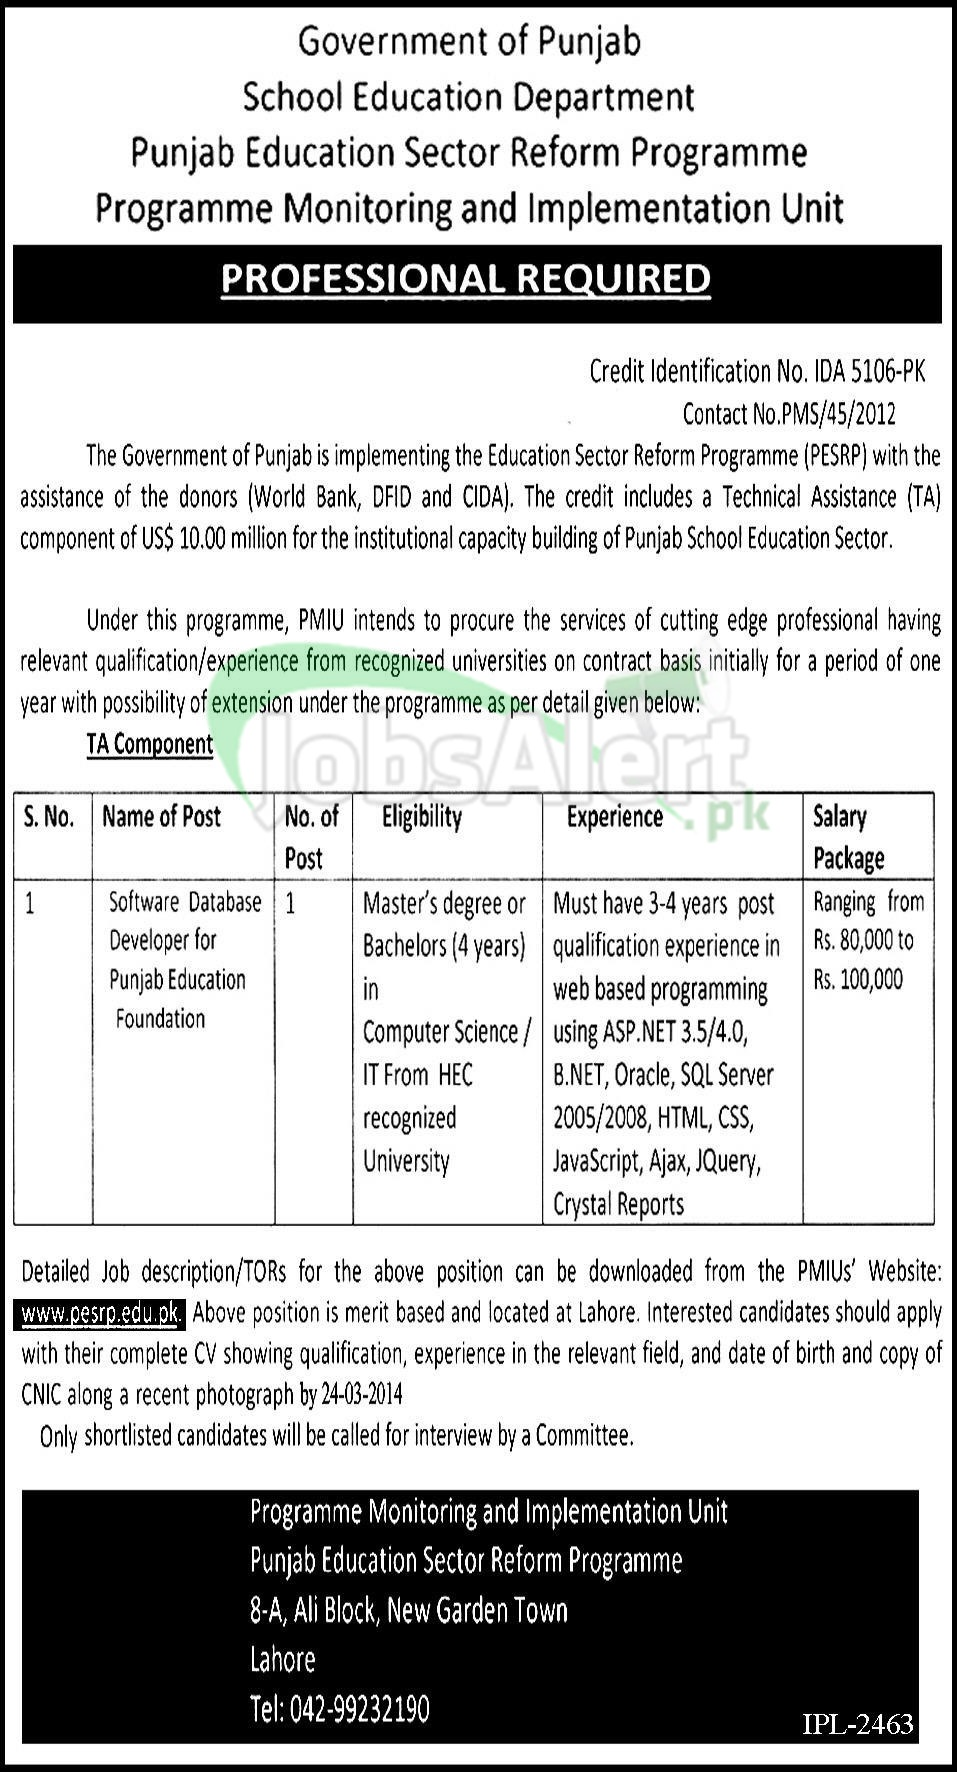 Jobs in Punjab Education Sector Reform Programme Govt of Punjab